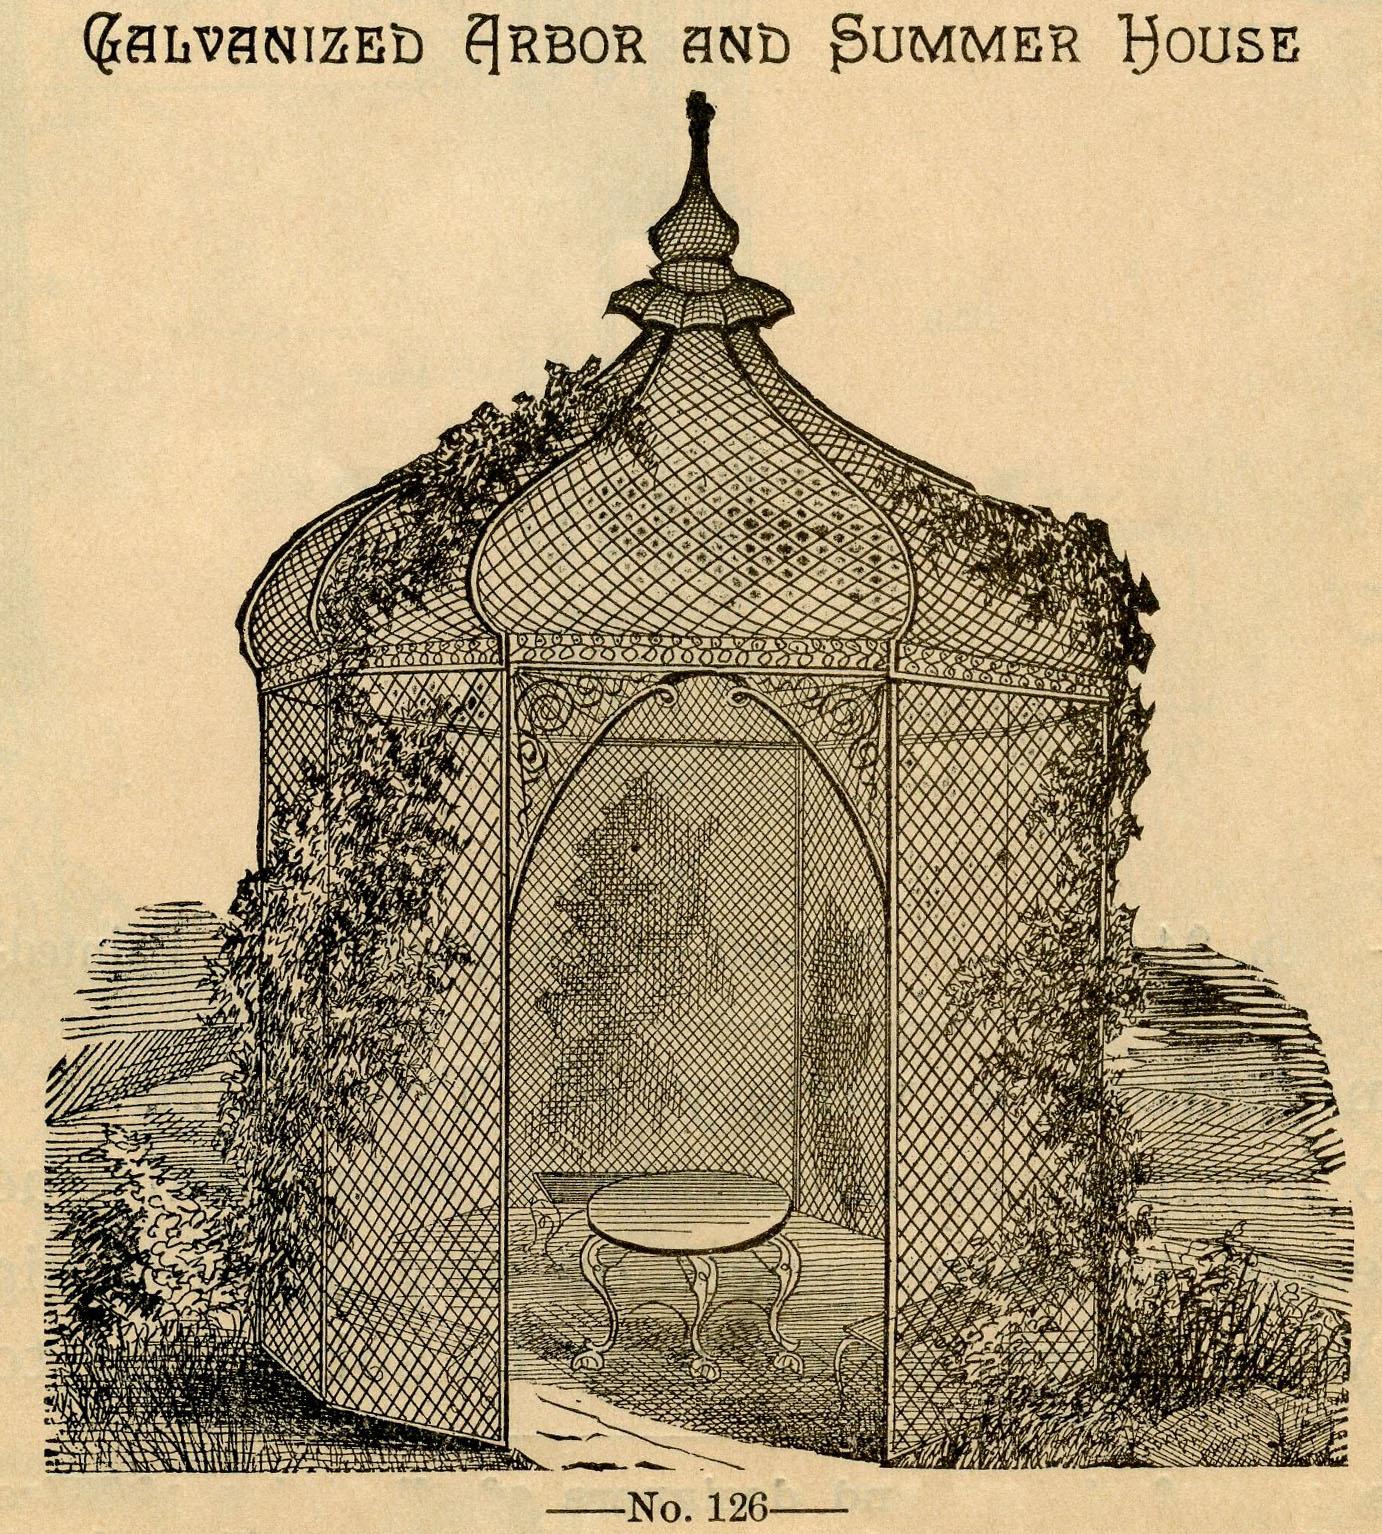 Vintage Garden Graphic - Beautiful Gazebo - The Graphics Fairy